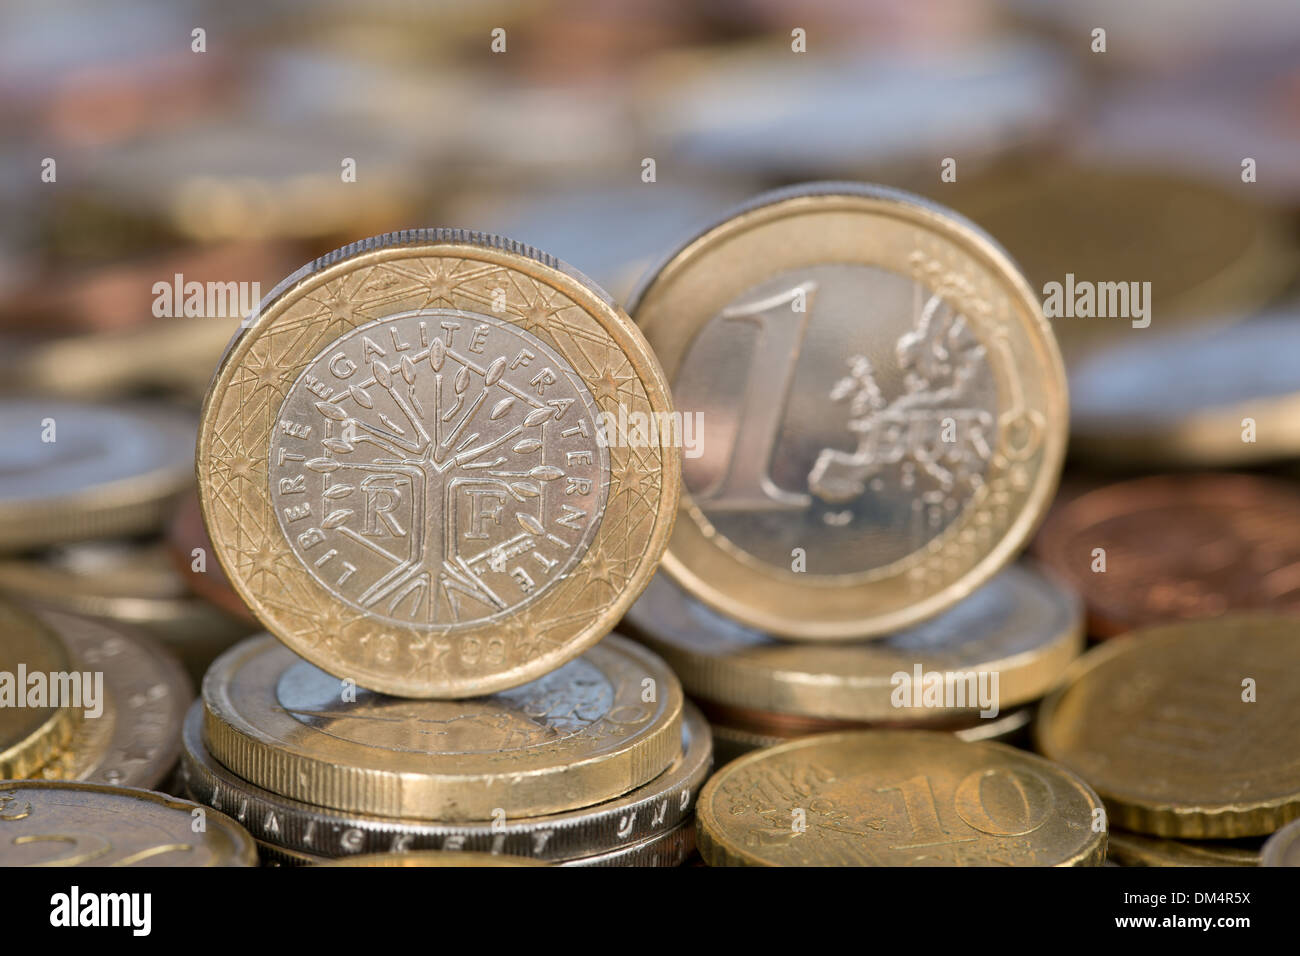 A one Euro coin from the EU member country France - Stock Image